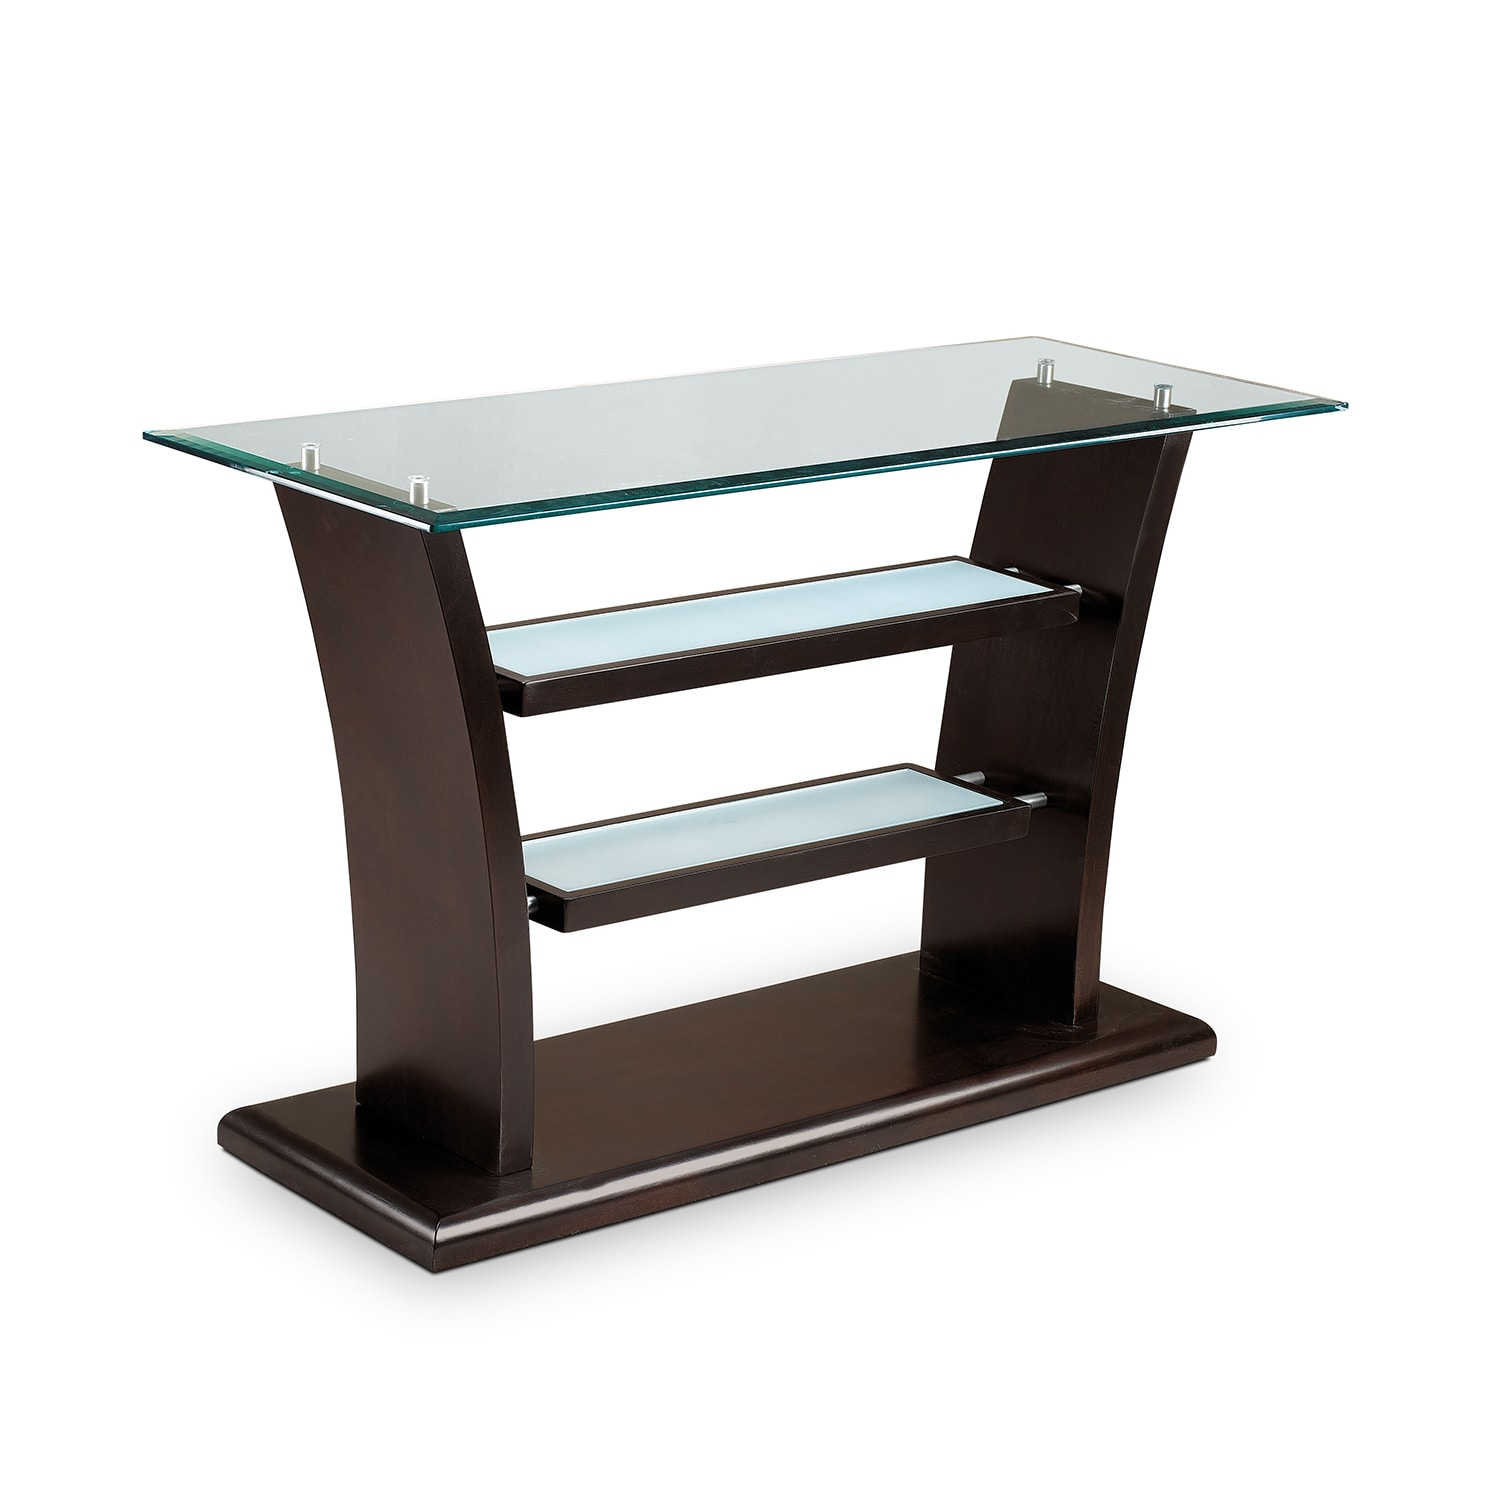 [Bell Aer Sofa Table]